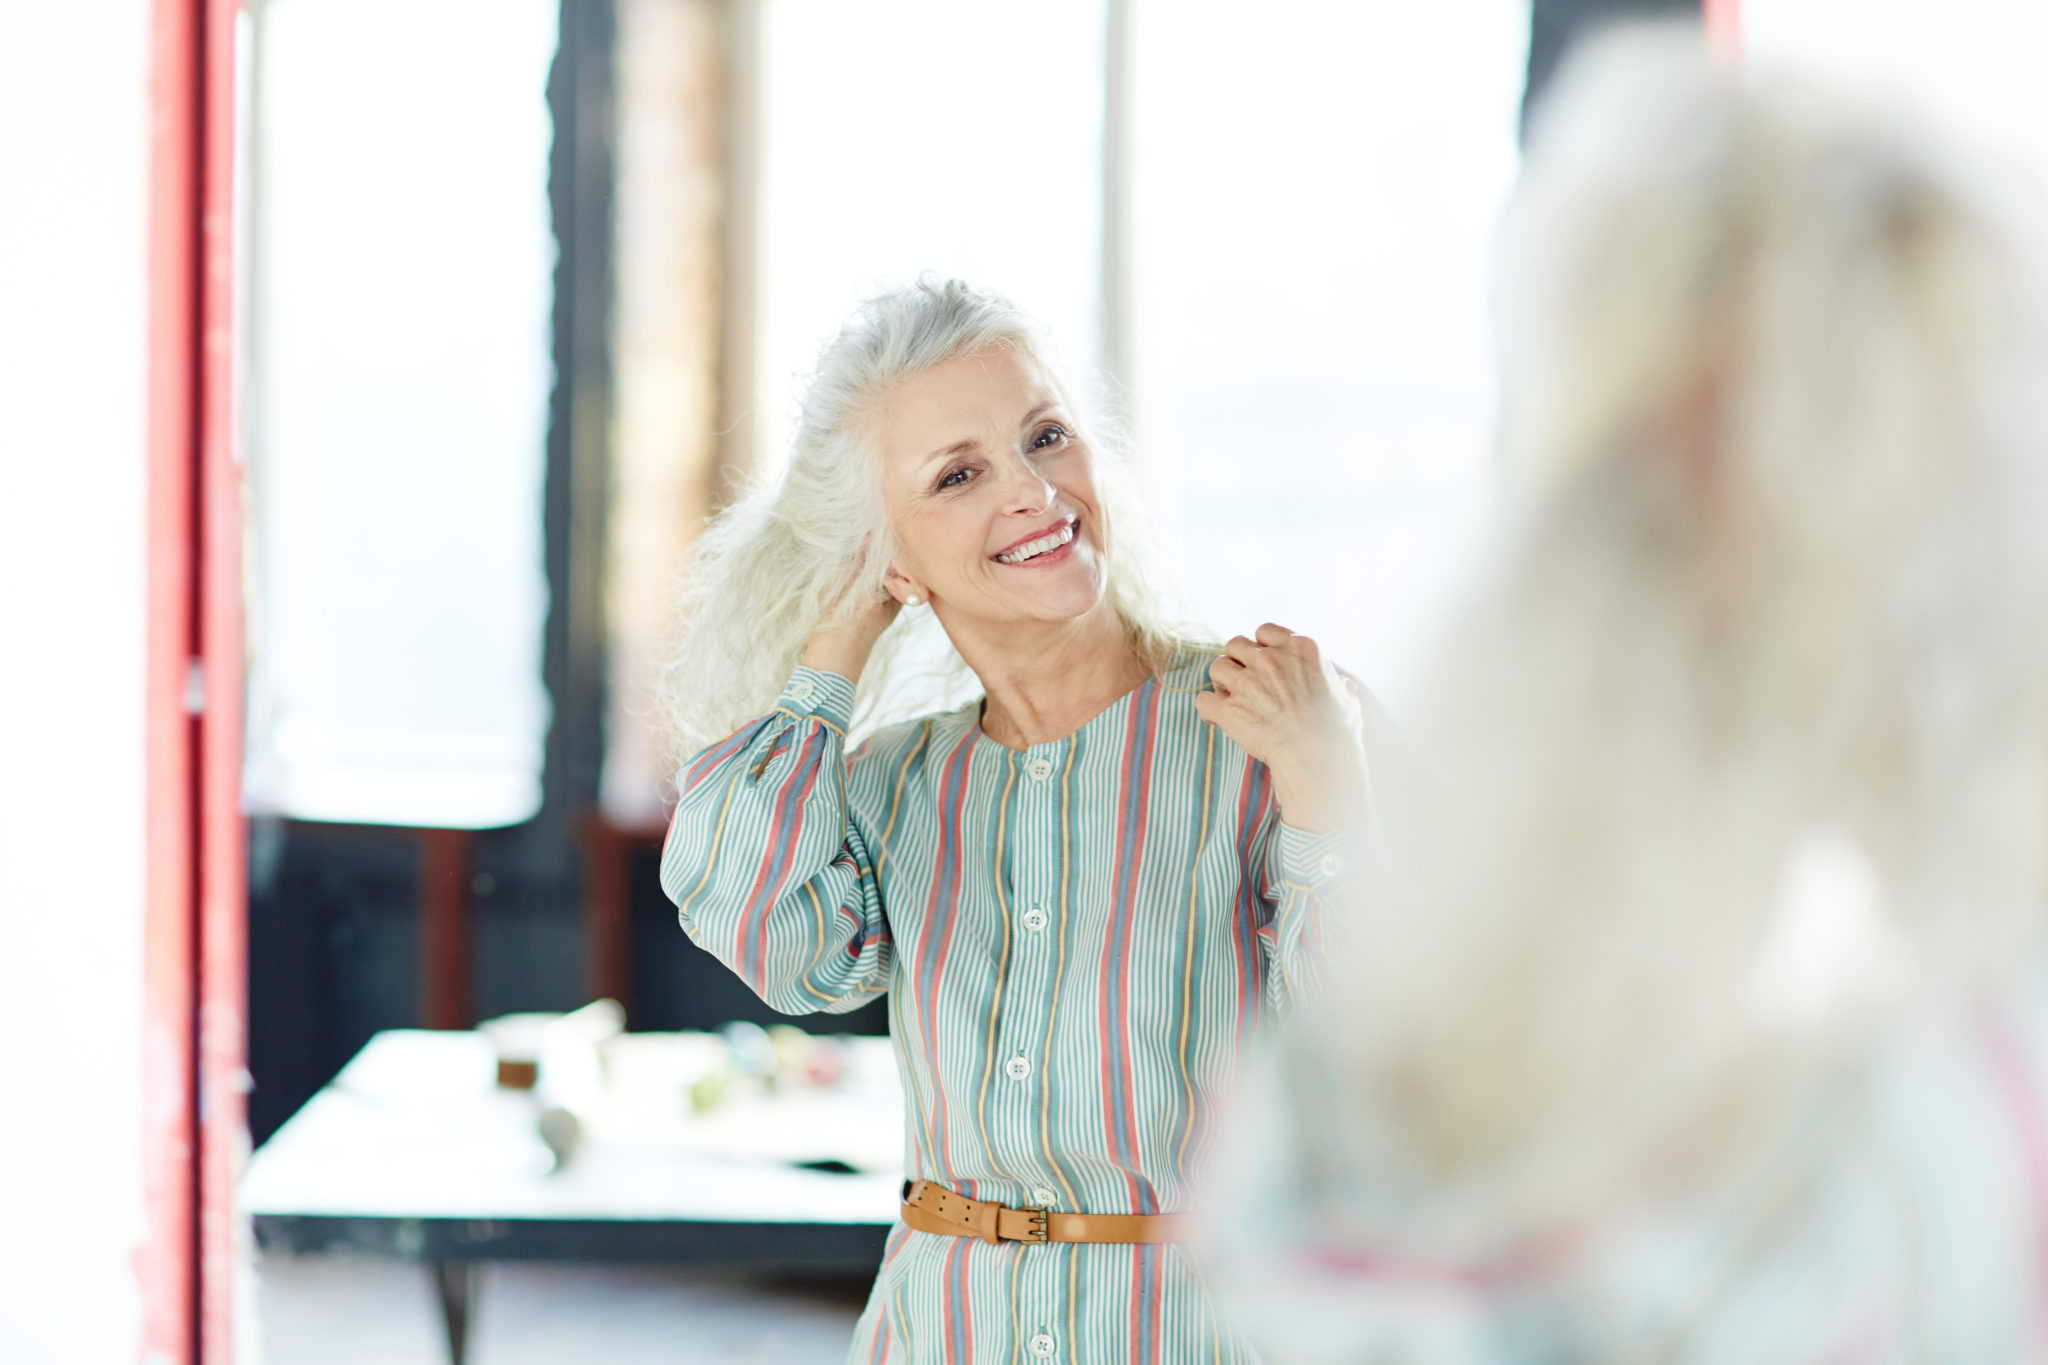 woman looks into mirror and smiles